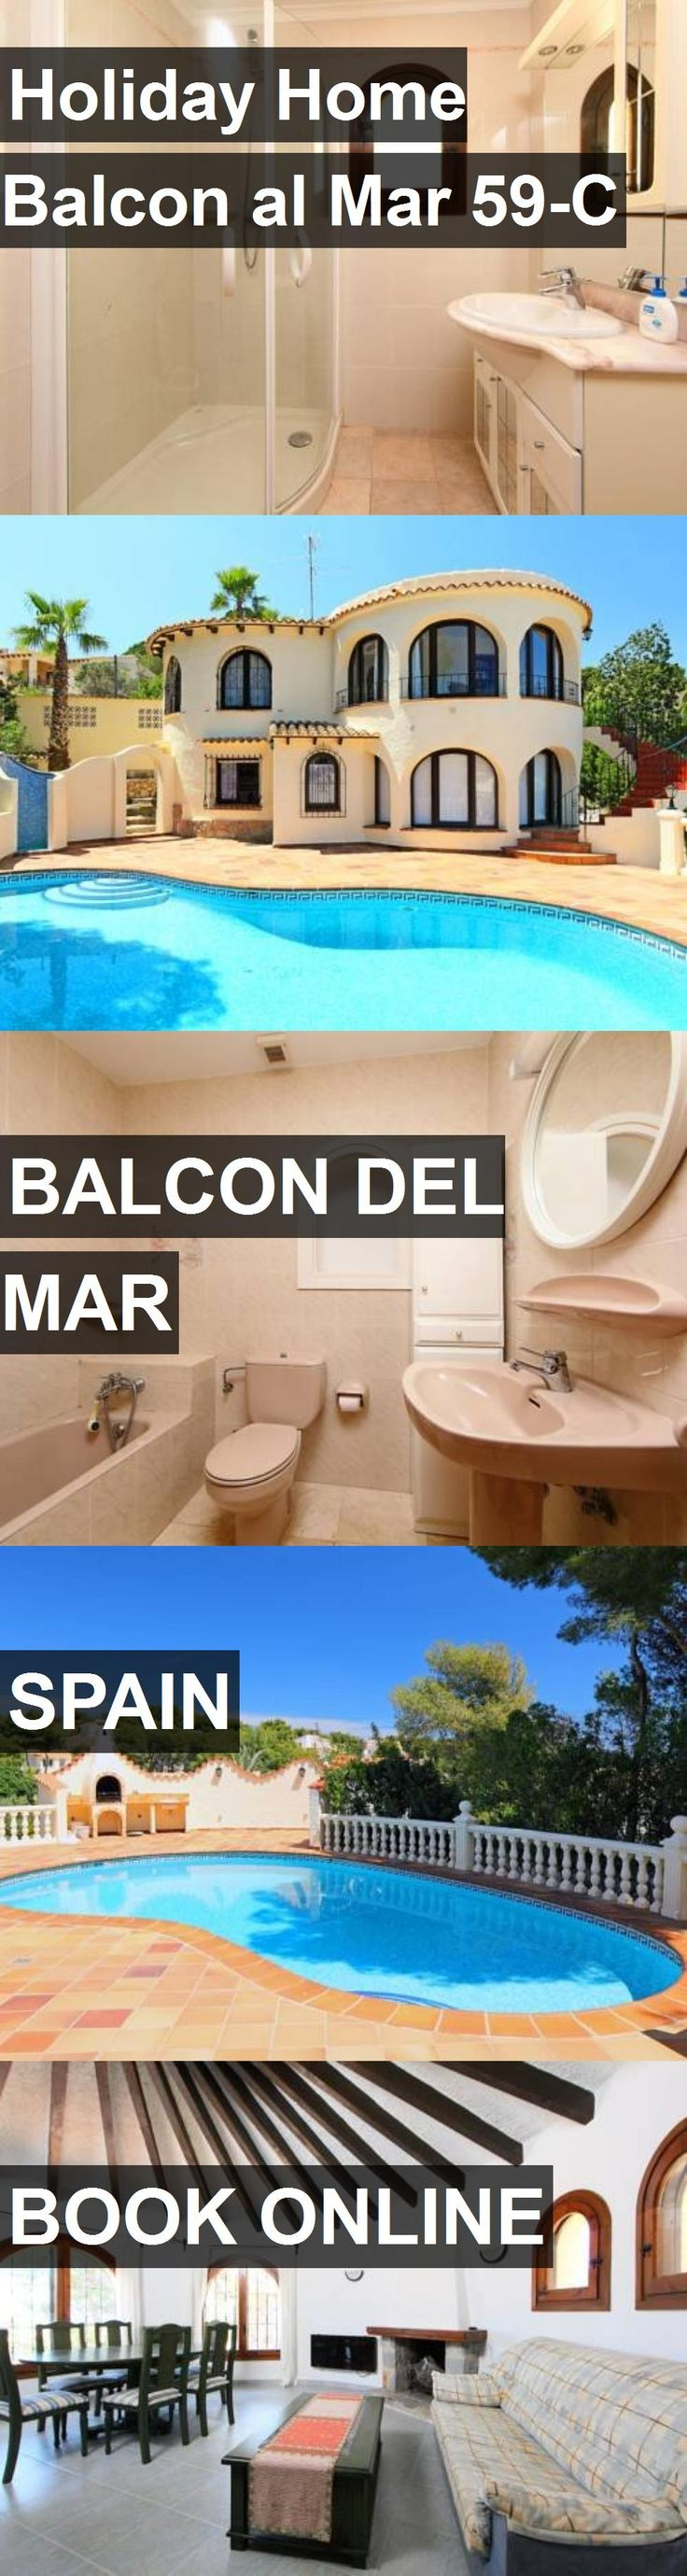 Hotel Holiday Home Balcon al Mar 59-C in Balcon del Mar, Spain. For more information, photos, reviews and best prices please follow the link. #Spain #BalcondelMar #HolidayHomeBalconalMar59-C #hotel #travel #vacation